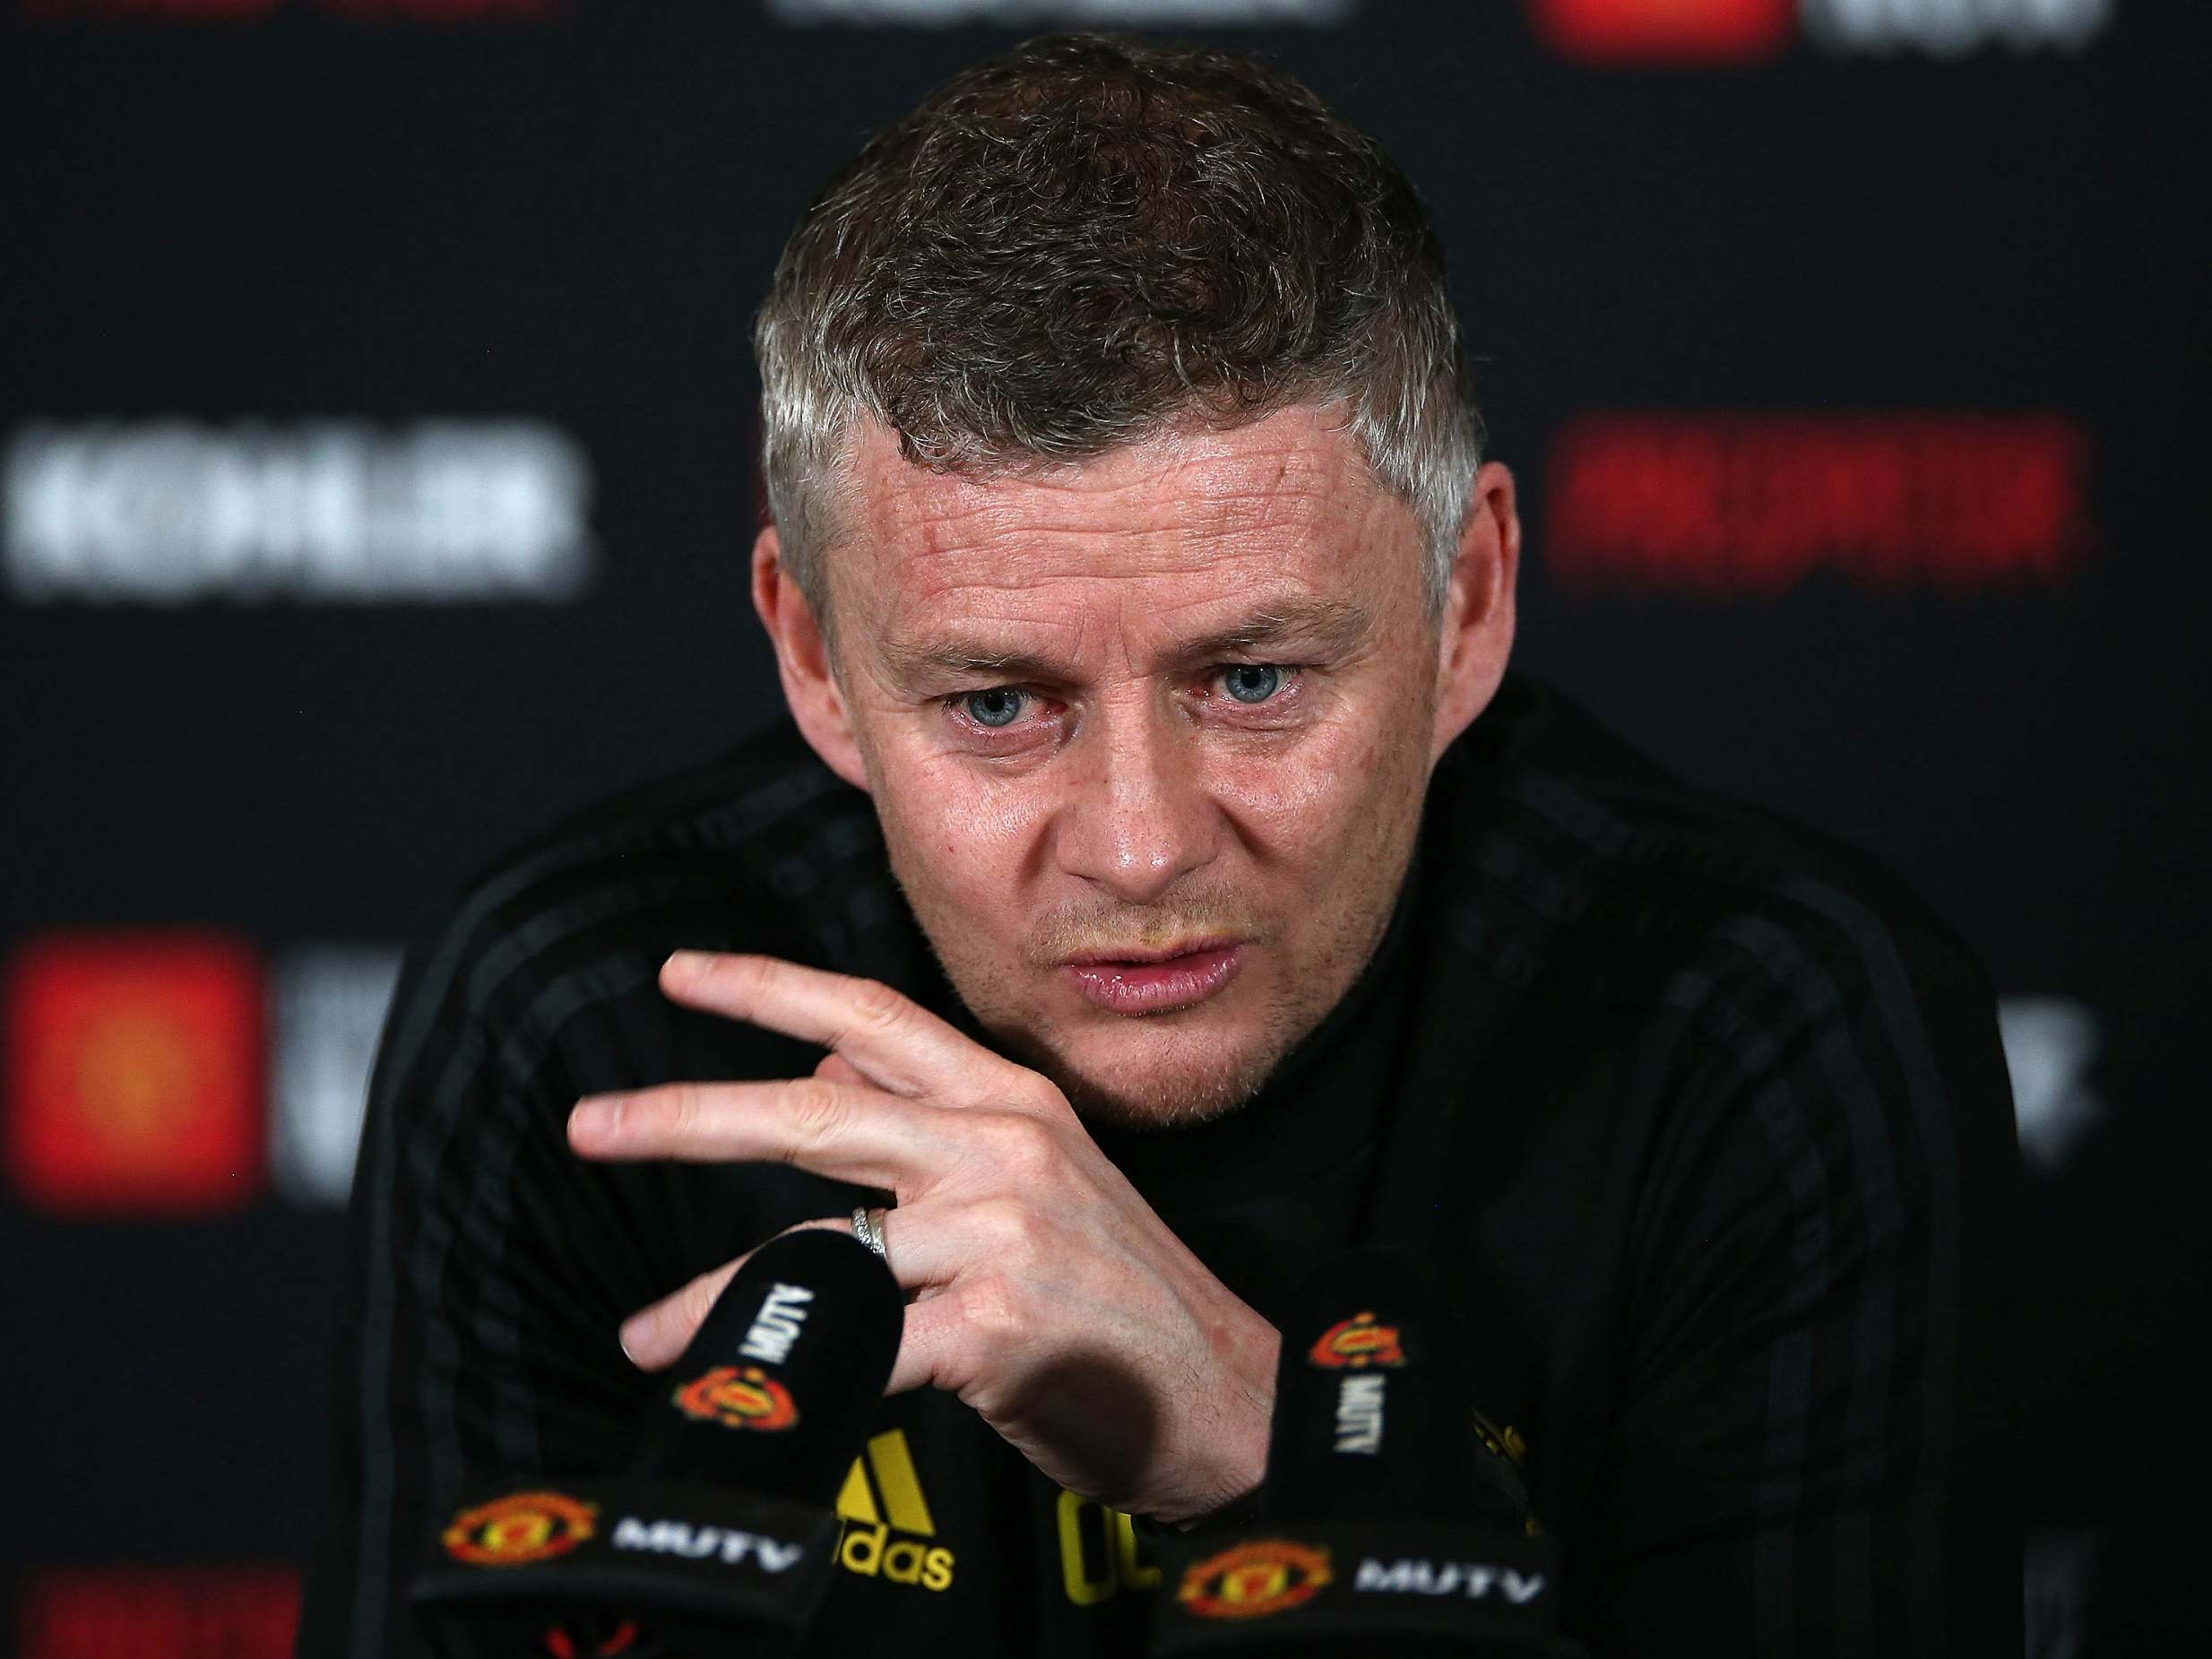 Solskjaer: Players must be role models and support NHS 'heroes'